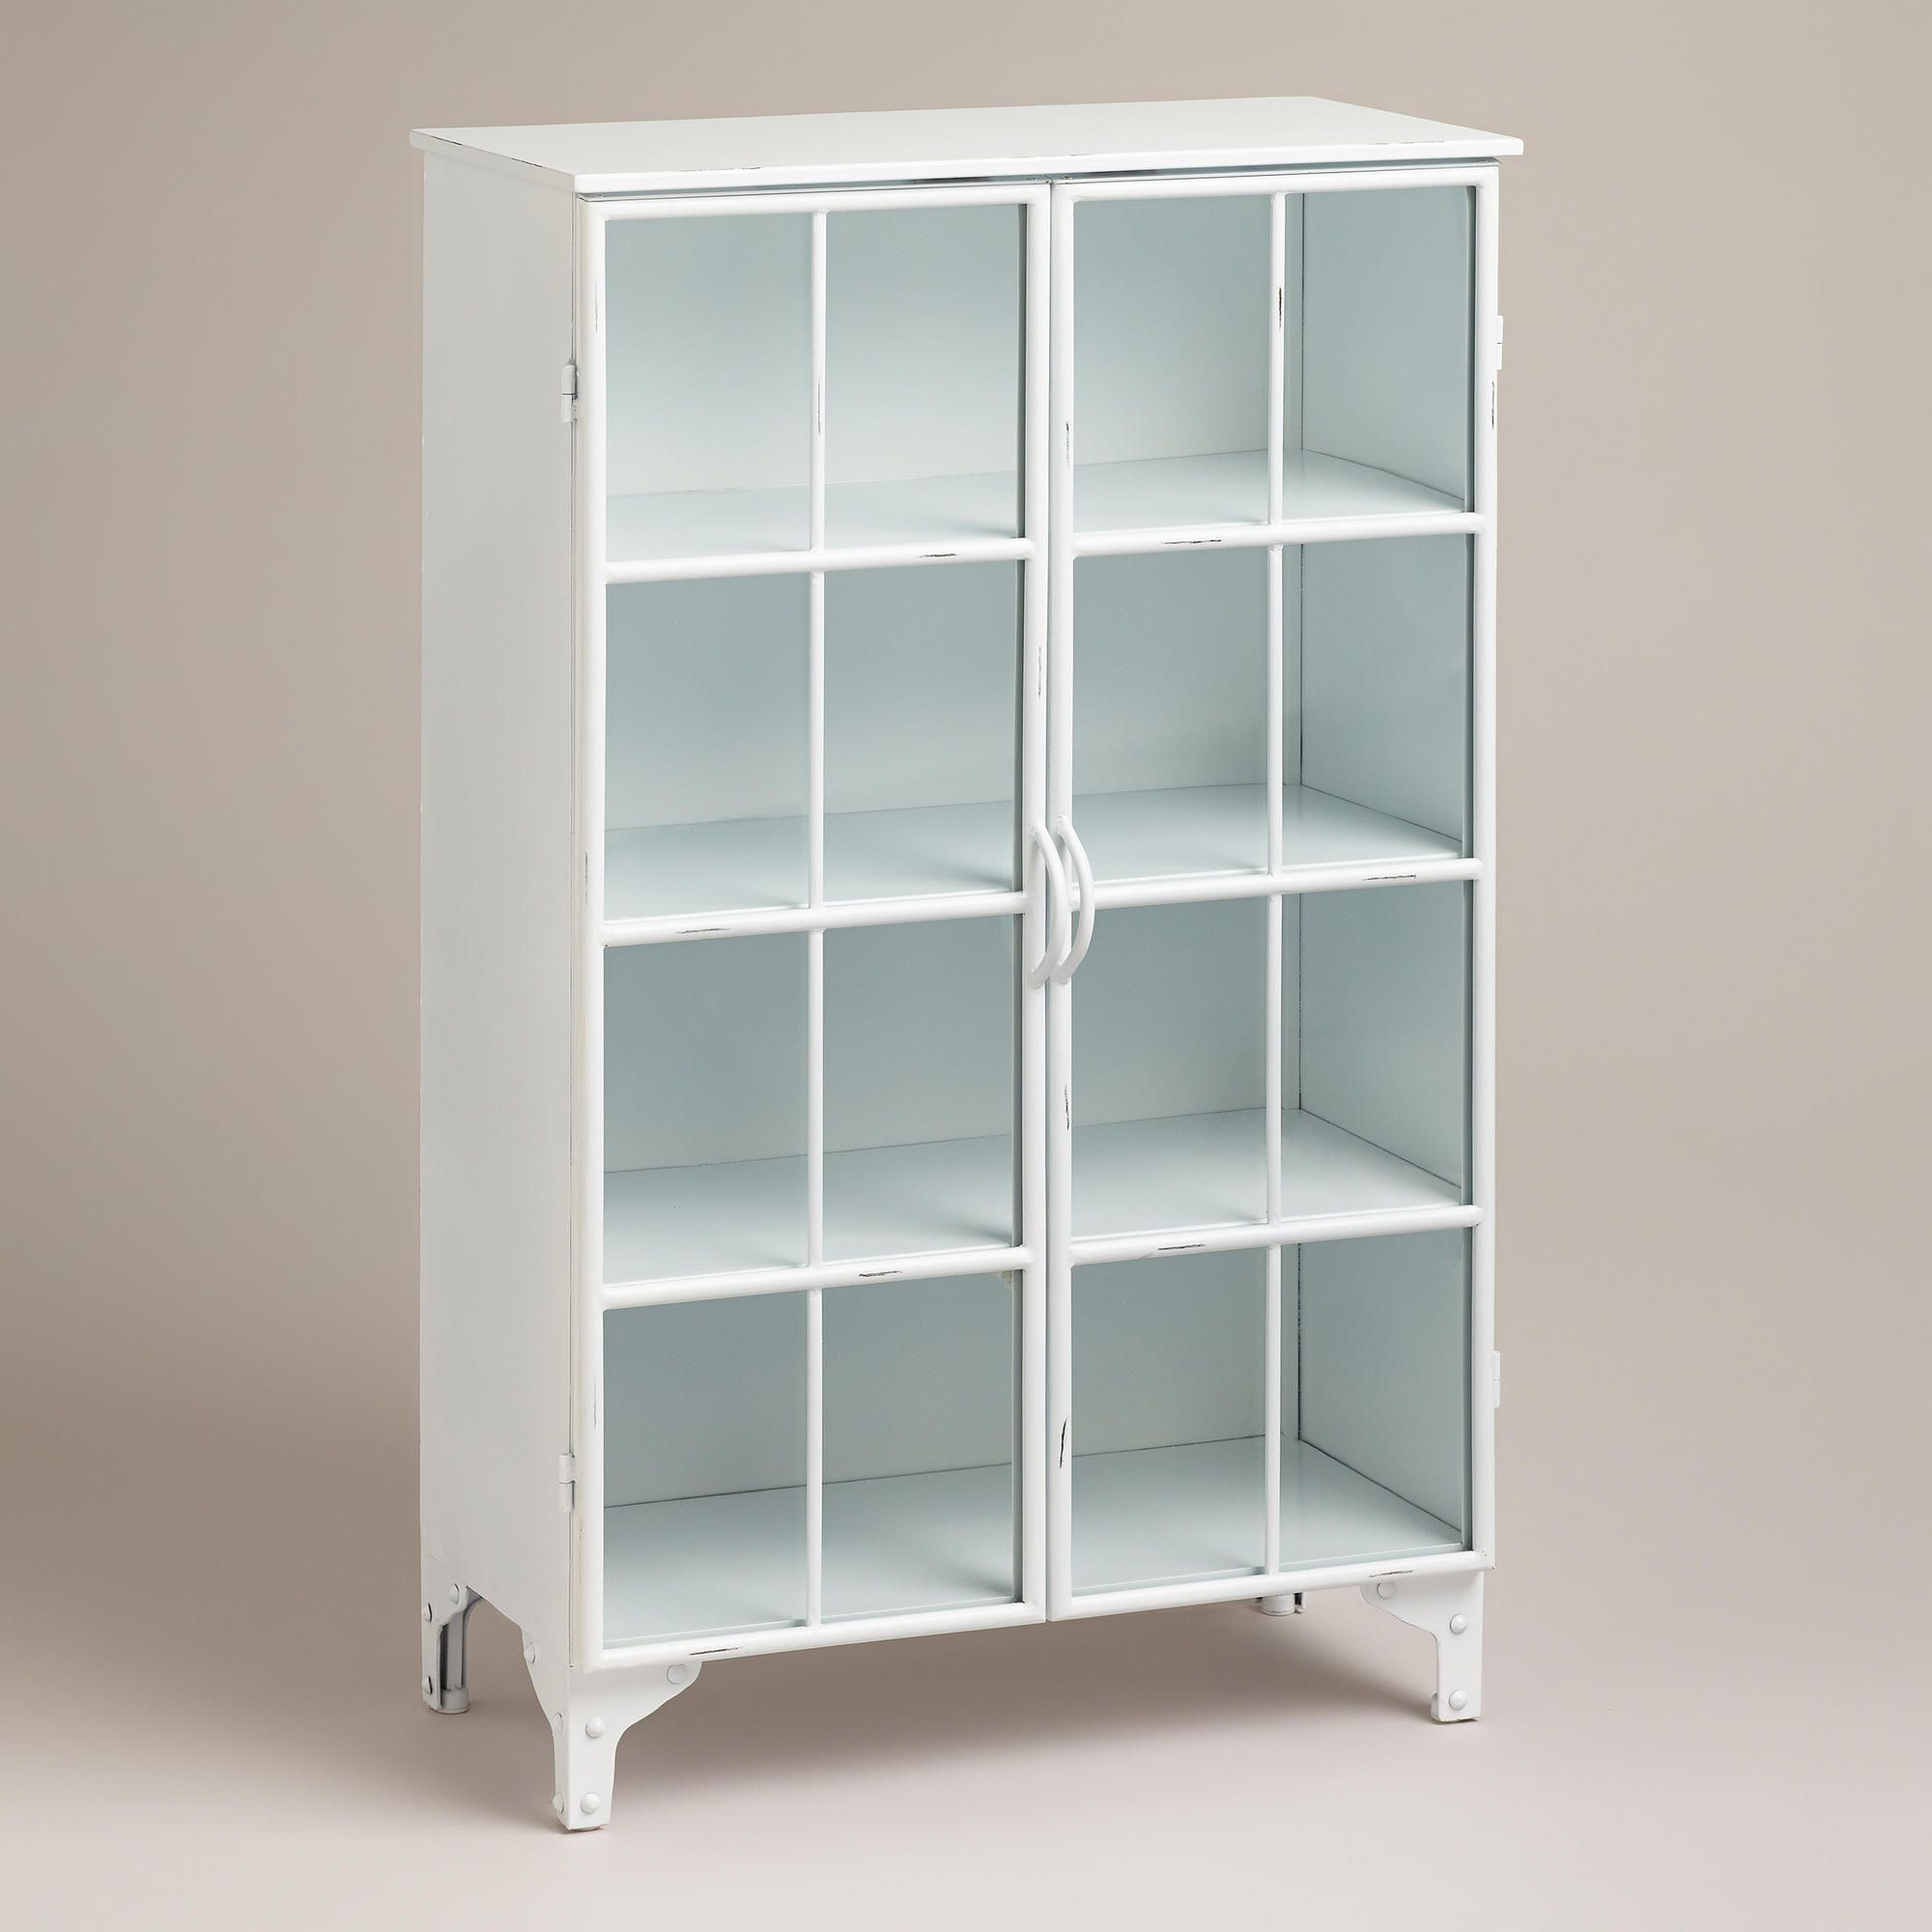 White Giselle Double Cabinet from World Market. Made of metal in a ...